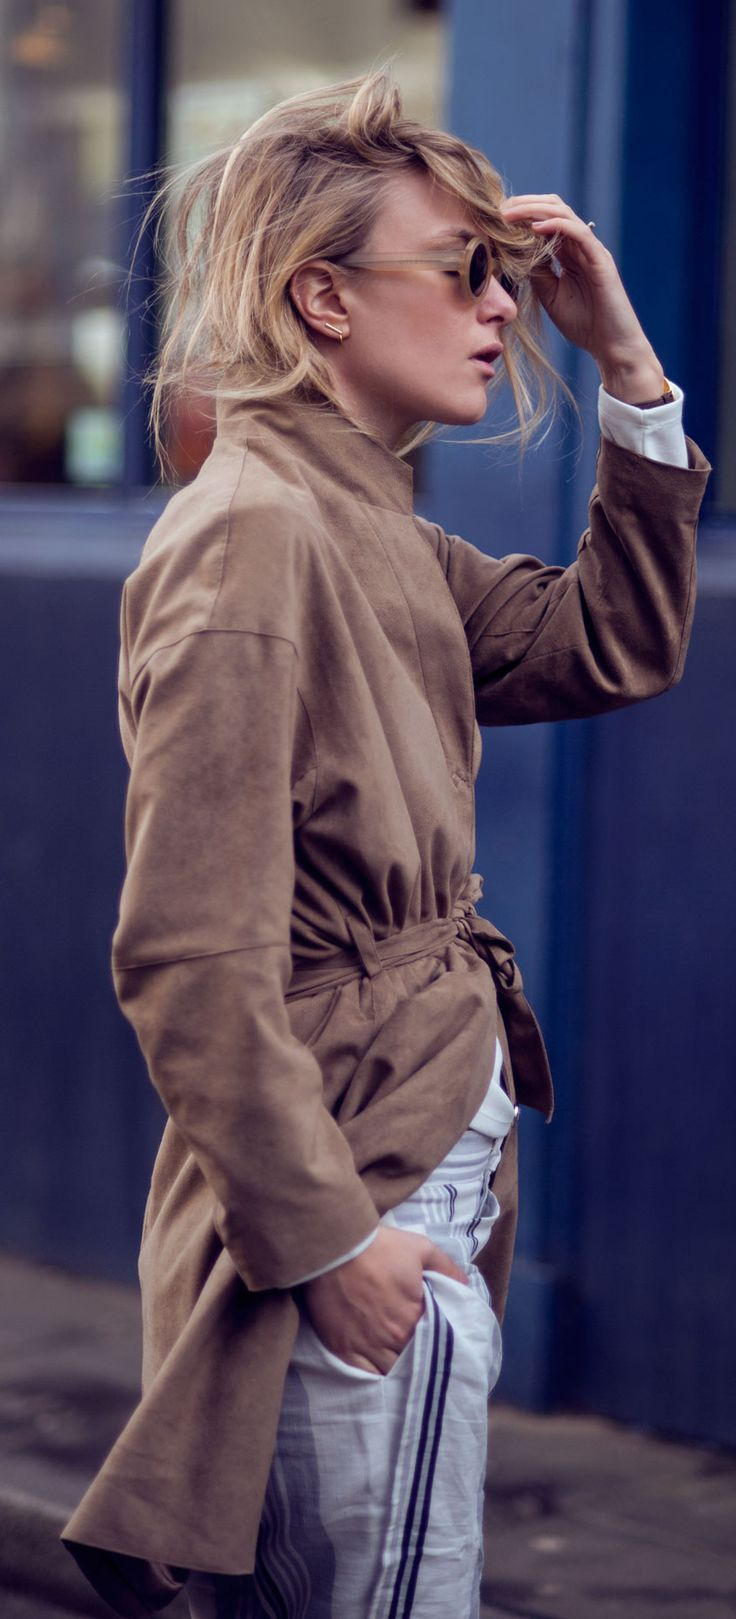 Suede Outfit: Rebecca Laurey is wearing a tan suede coat from Filippa K